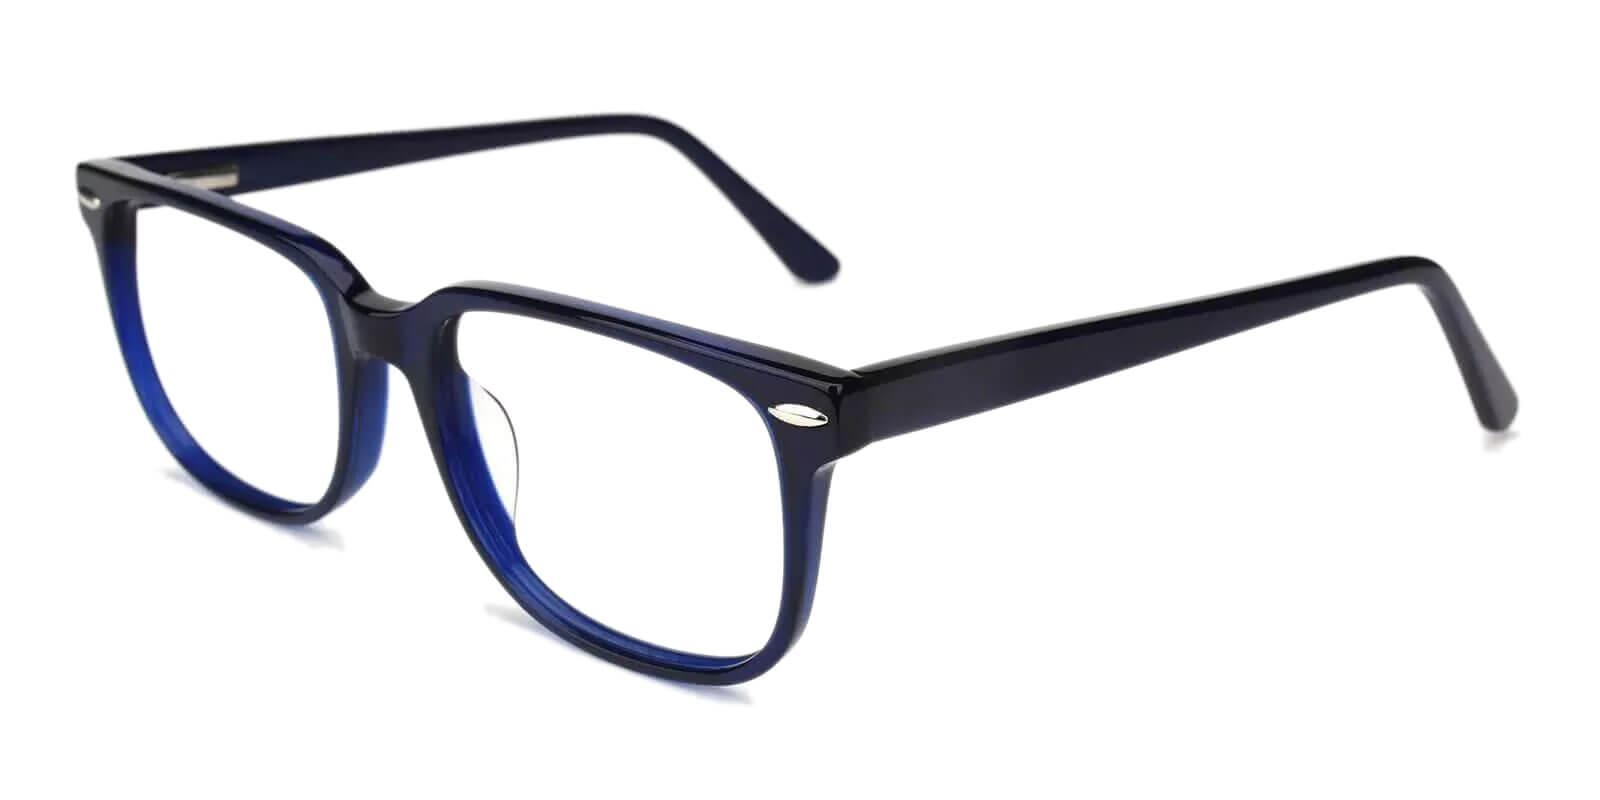 Christy Blue Acetate Eyeglasses , SpringHinges , UniversalBridgeFit Frames from ABBE Glasses